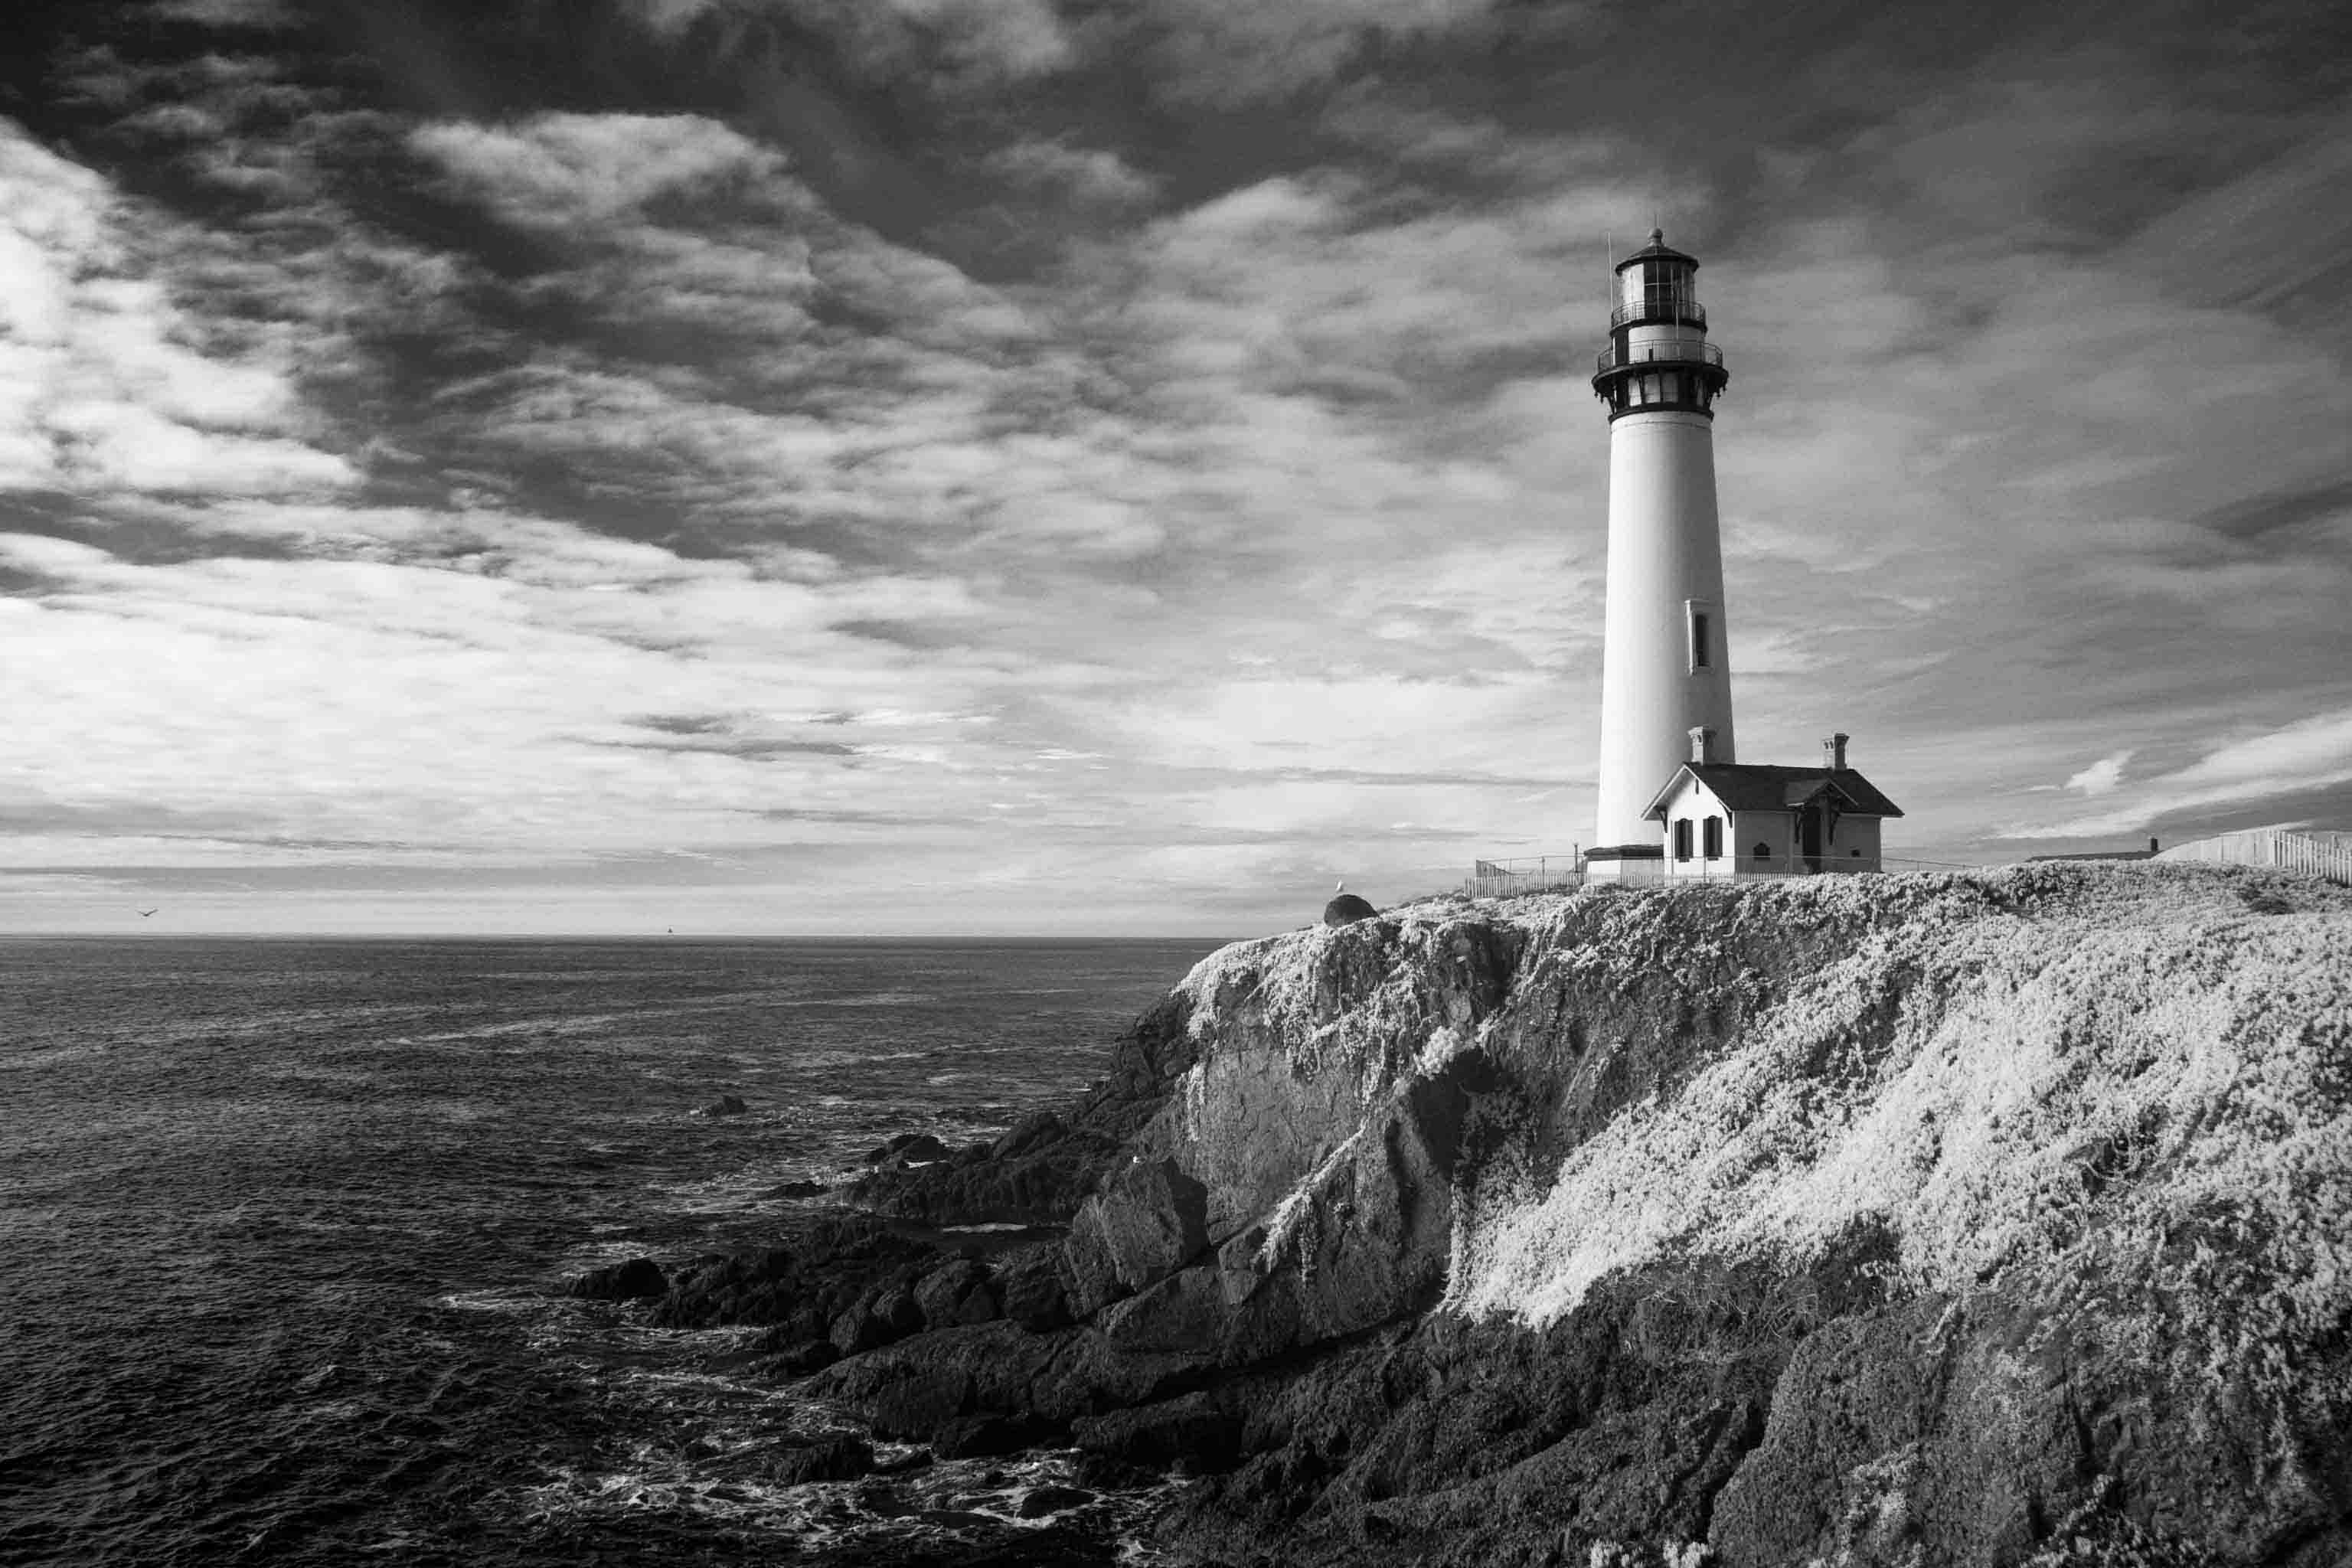 Lighthouse Coast Black And White Wallpapers - Wallpaper Cave